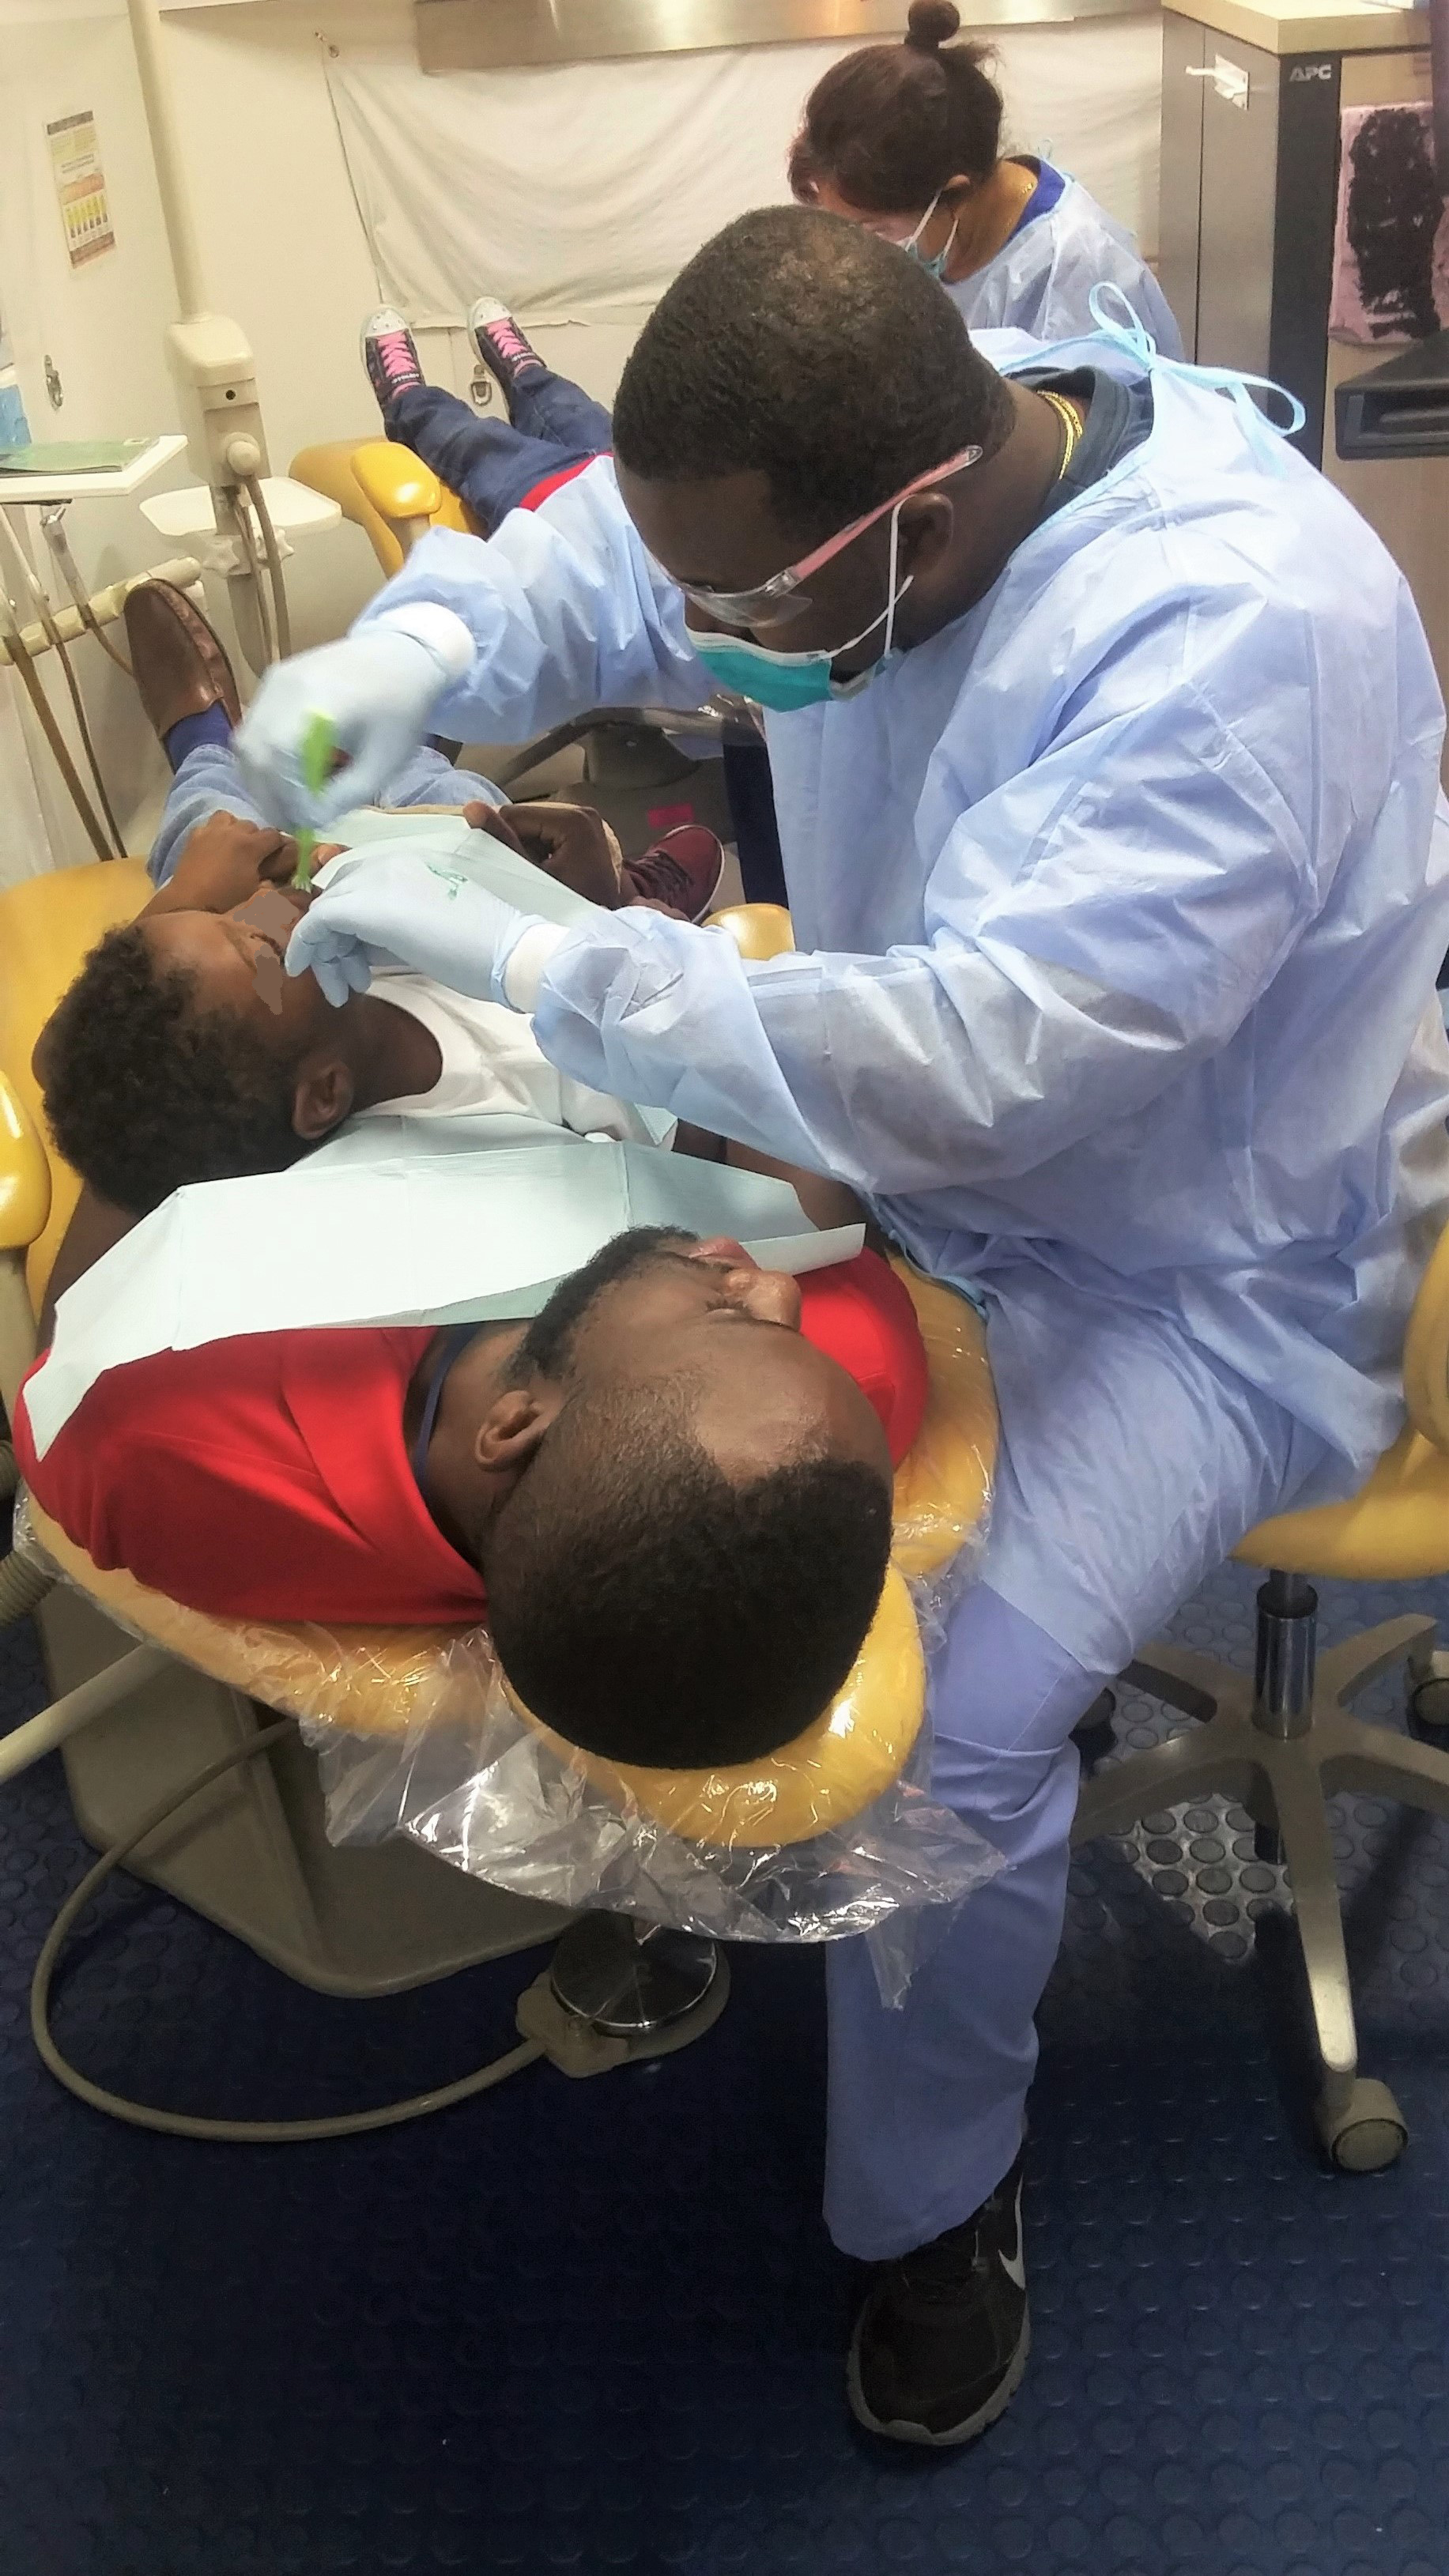 Hat's off to Curtiss Walker, a case manager in Manatee County, for going the extra mile by assuring the little man on his lap did not need to feel nervous about the dentist. Dr. Jerry Chery, DDS, works on the little man as he get's an exam and cleaning.